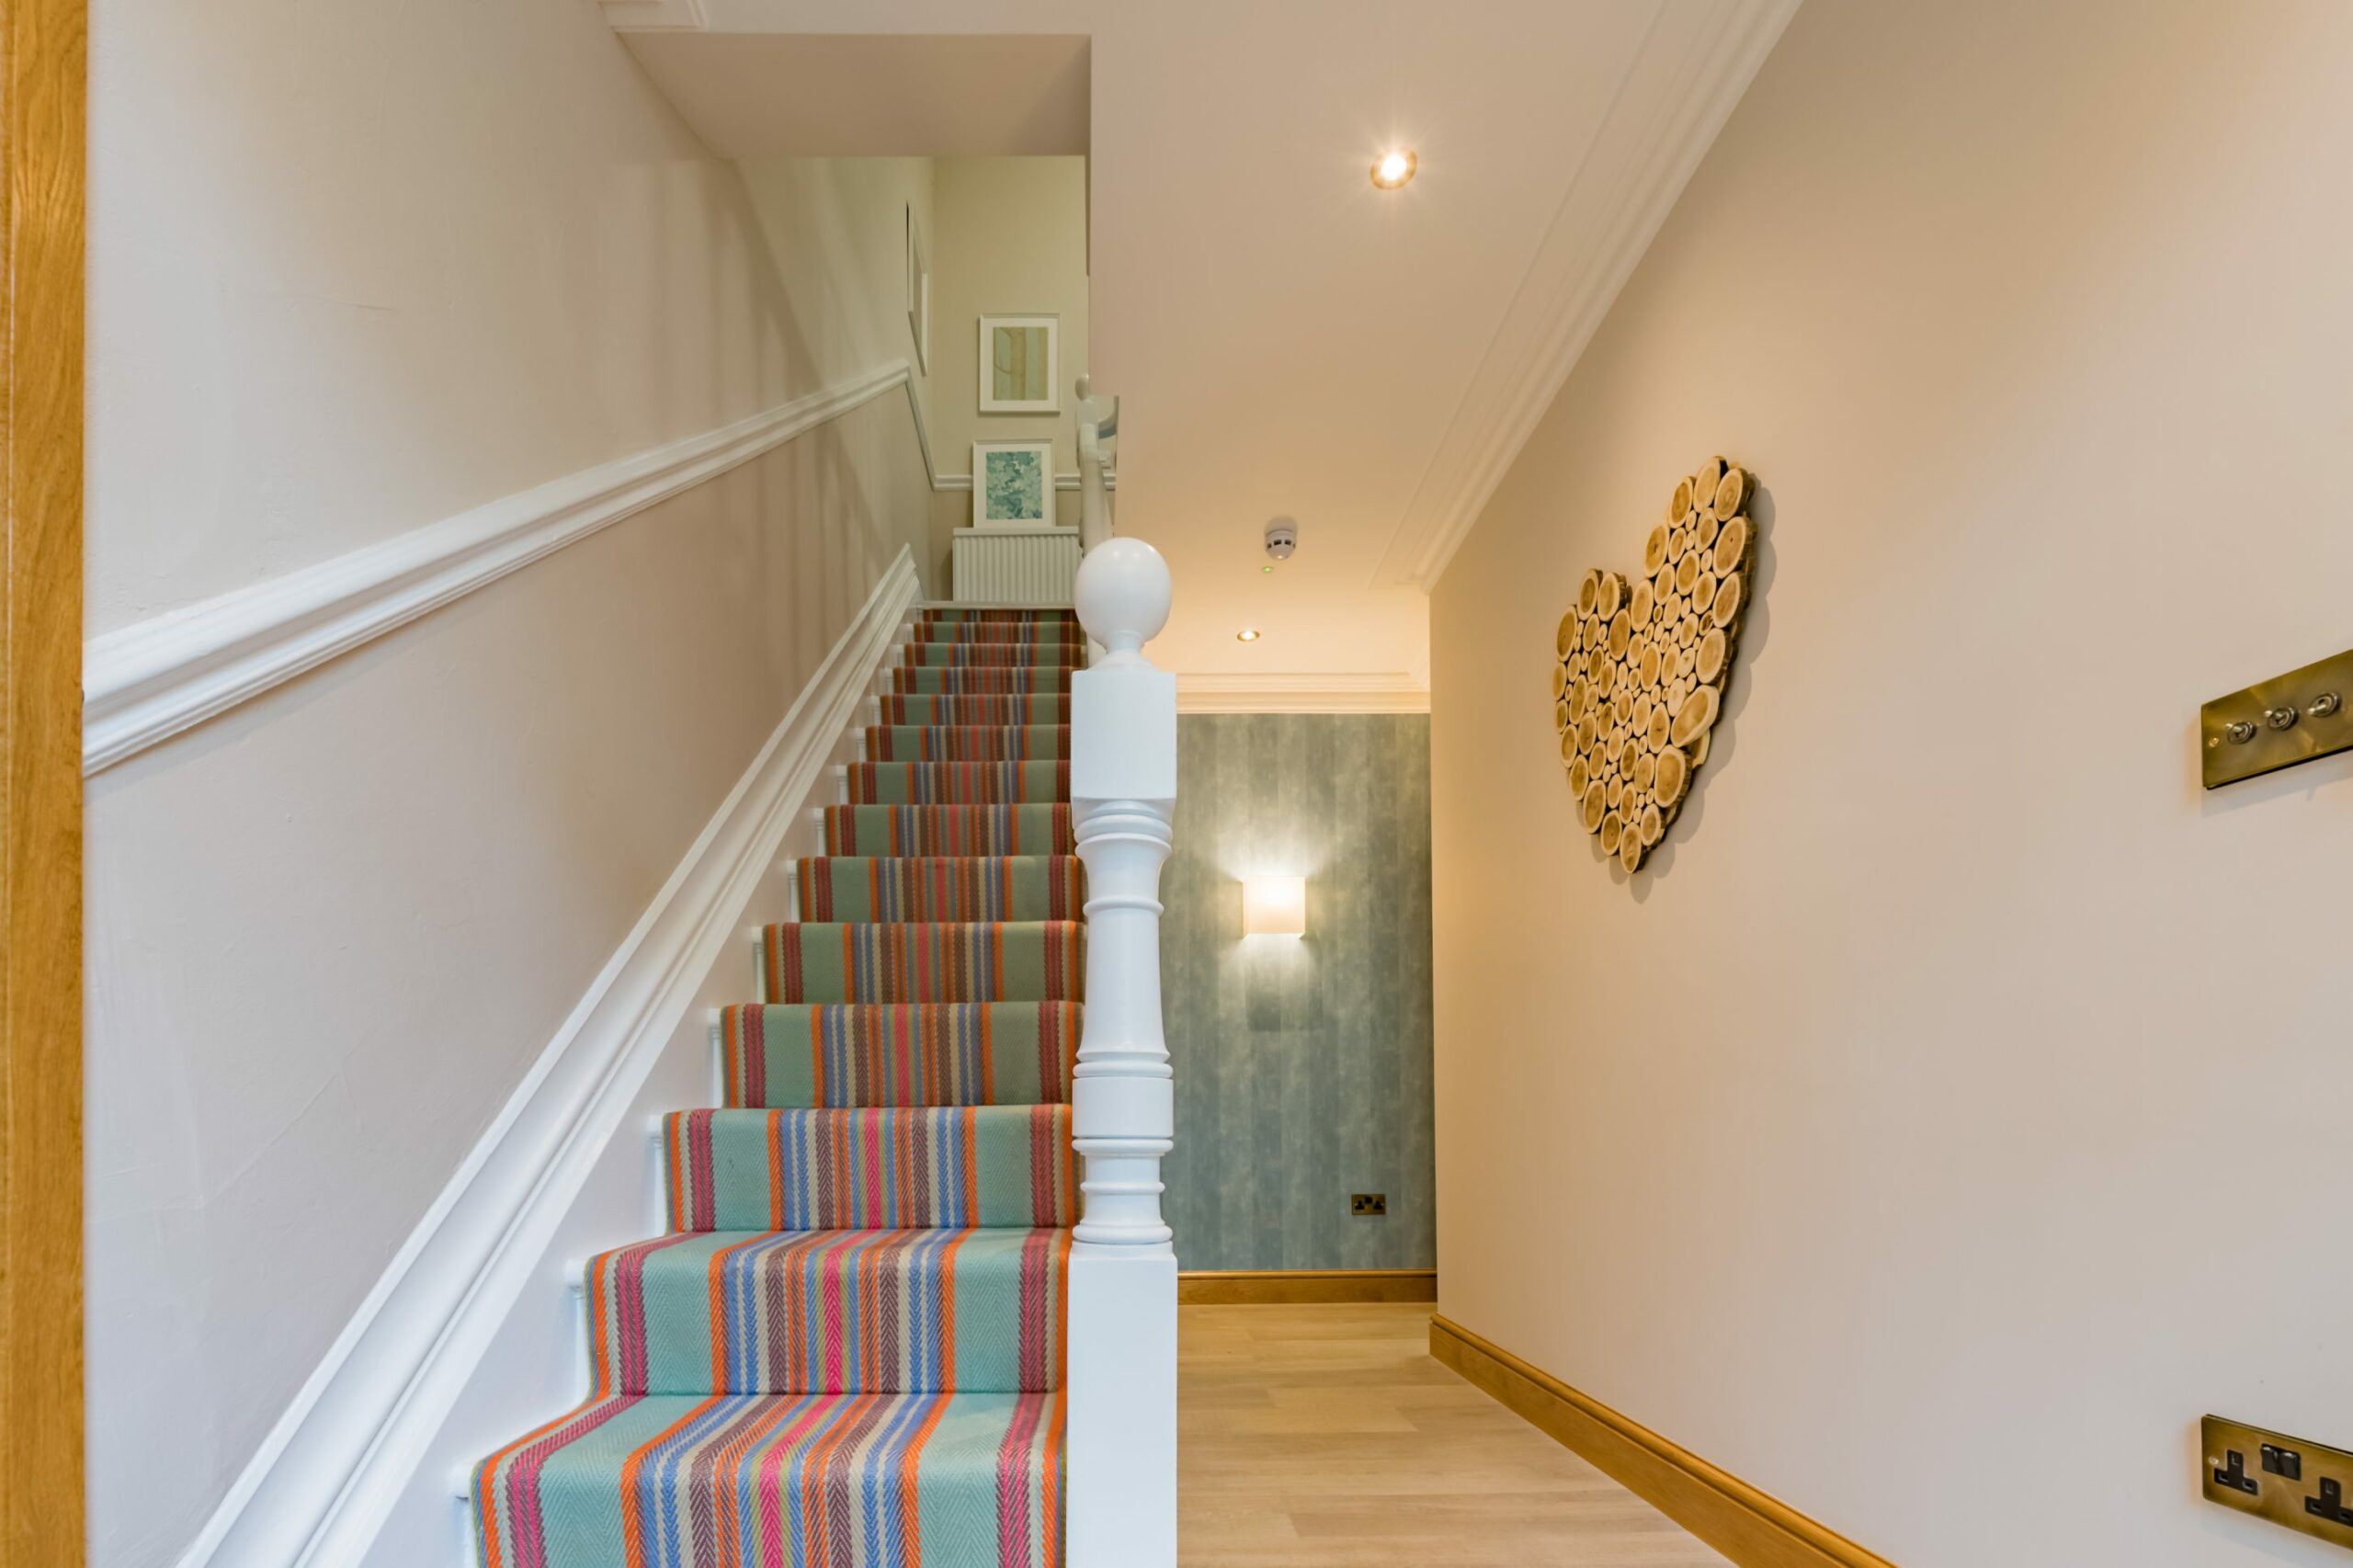 Hallway with stairs and heart shaped logs